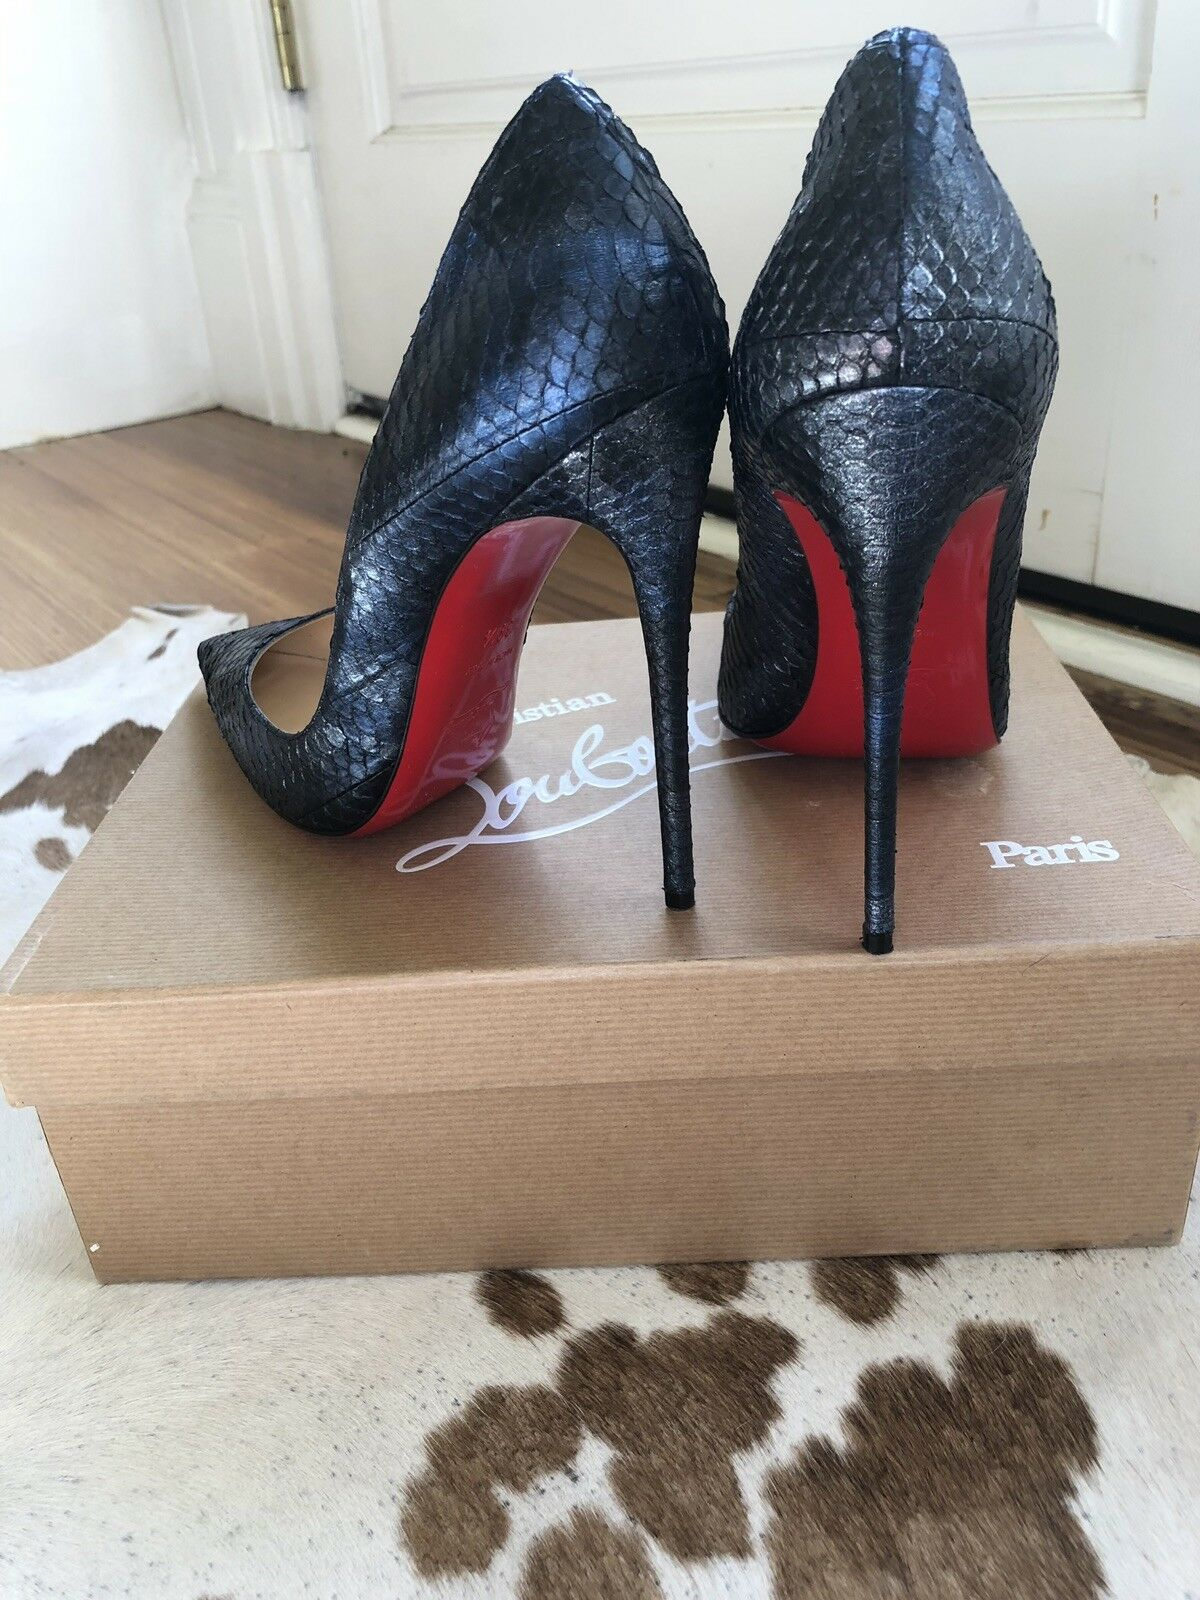 Breathtaking Authentic  1195 So Kate 120 120 120 Watersnake Christian Louboutin Pumps 4c23ca